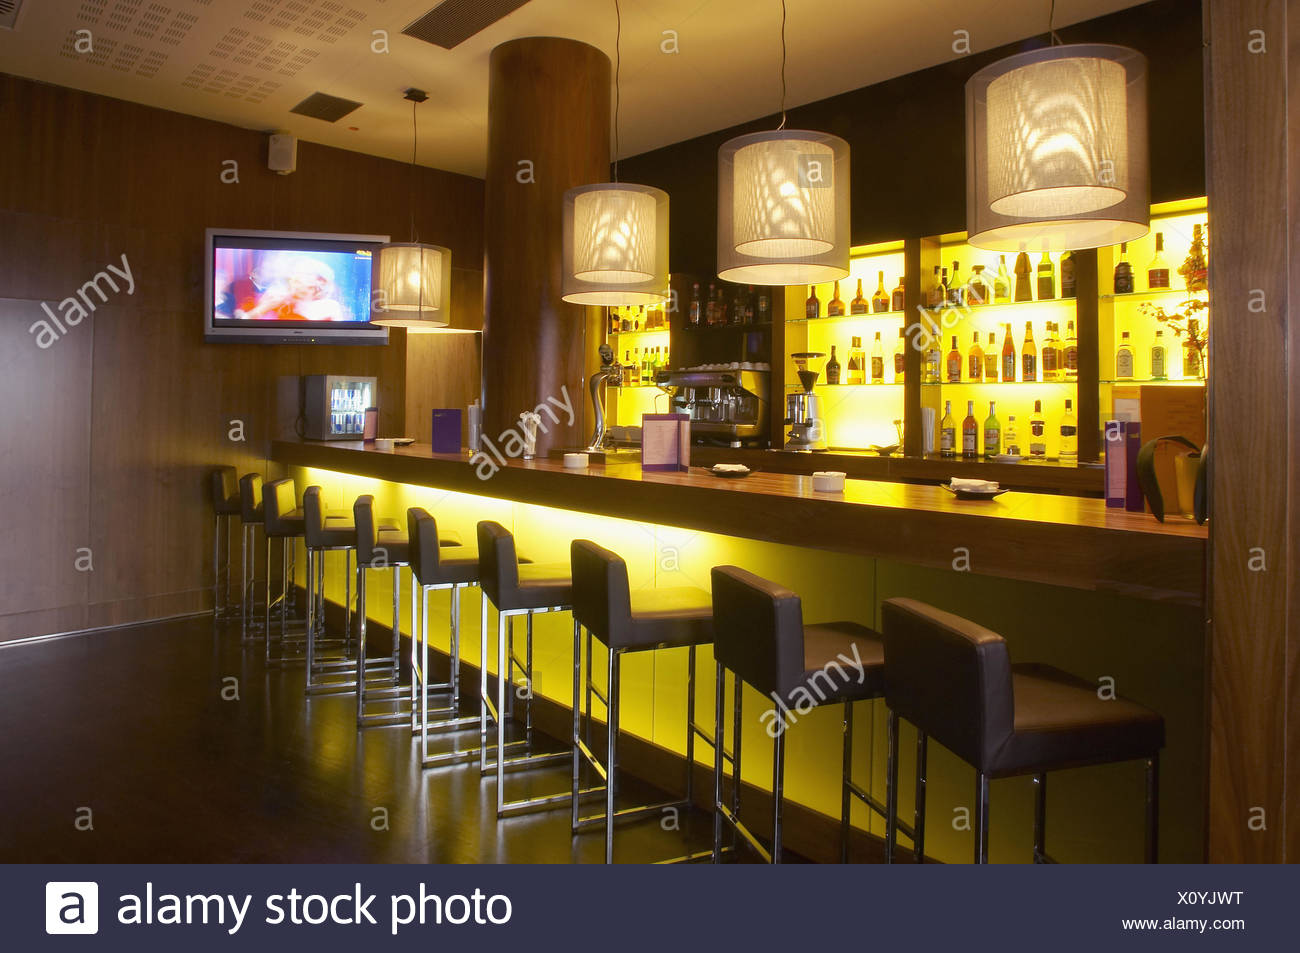 Golf Bar Stock Photos & Golf Bar Stock Images - Alamy